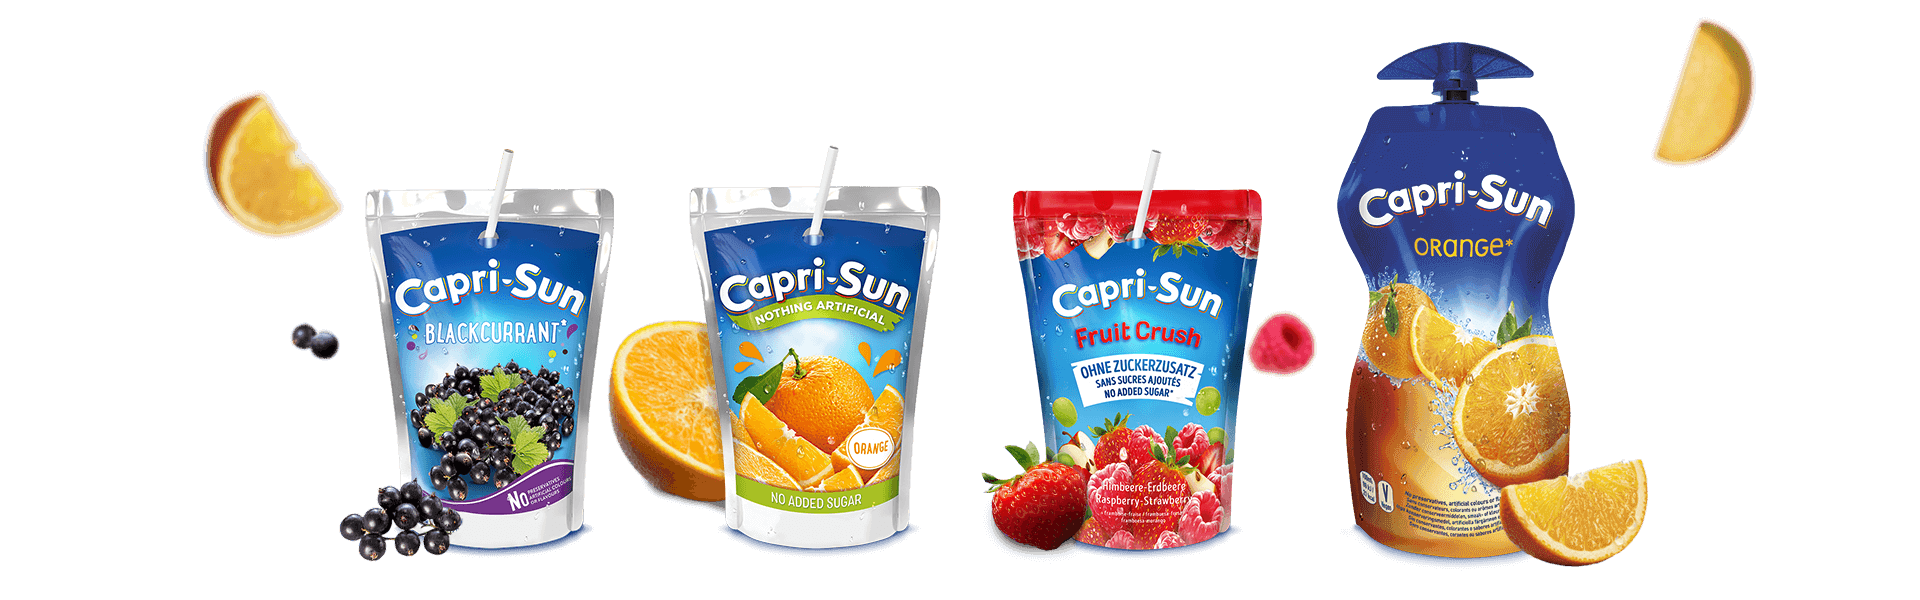 Capri-Sun_UK_Home_Header_with_Pouches_Paper_Straw